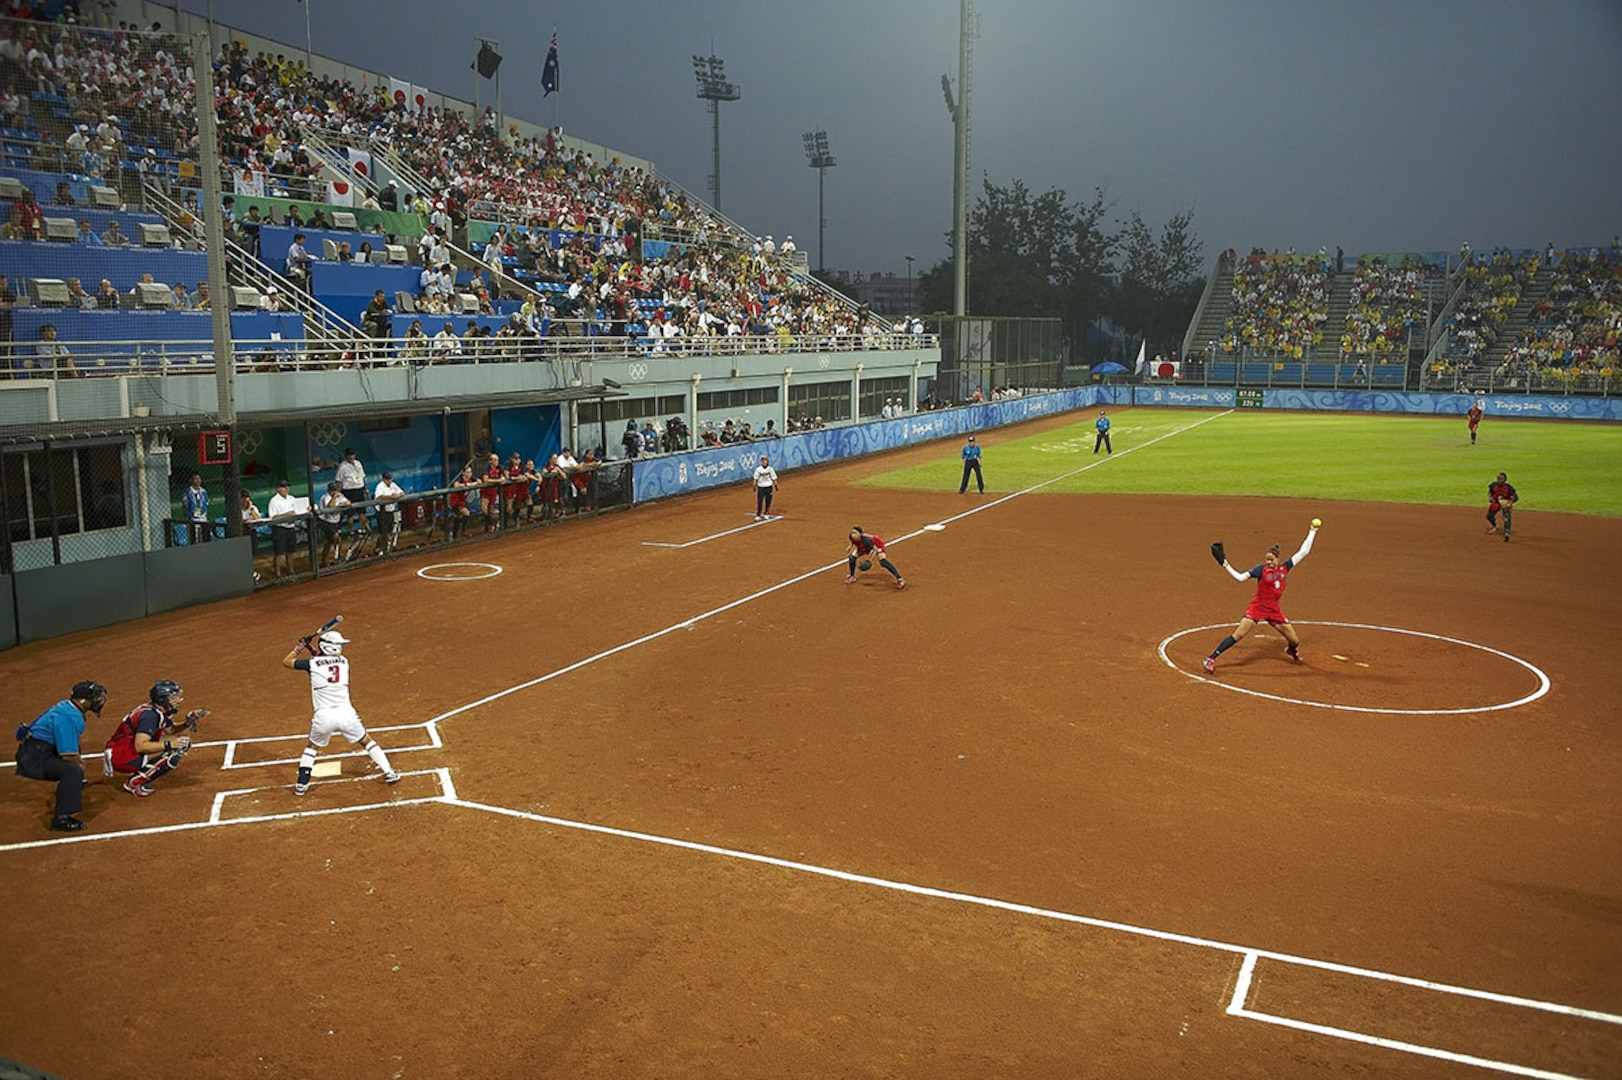 Team USA plays Japan in the gold medal final for softball at the 2008 Beijing Olympics